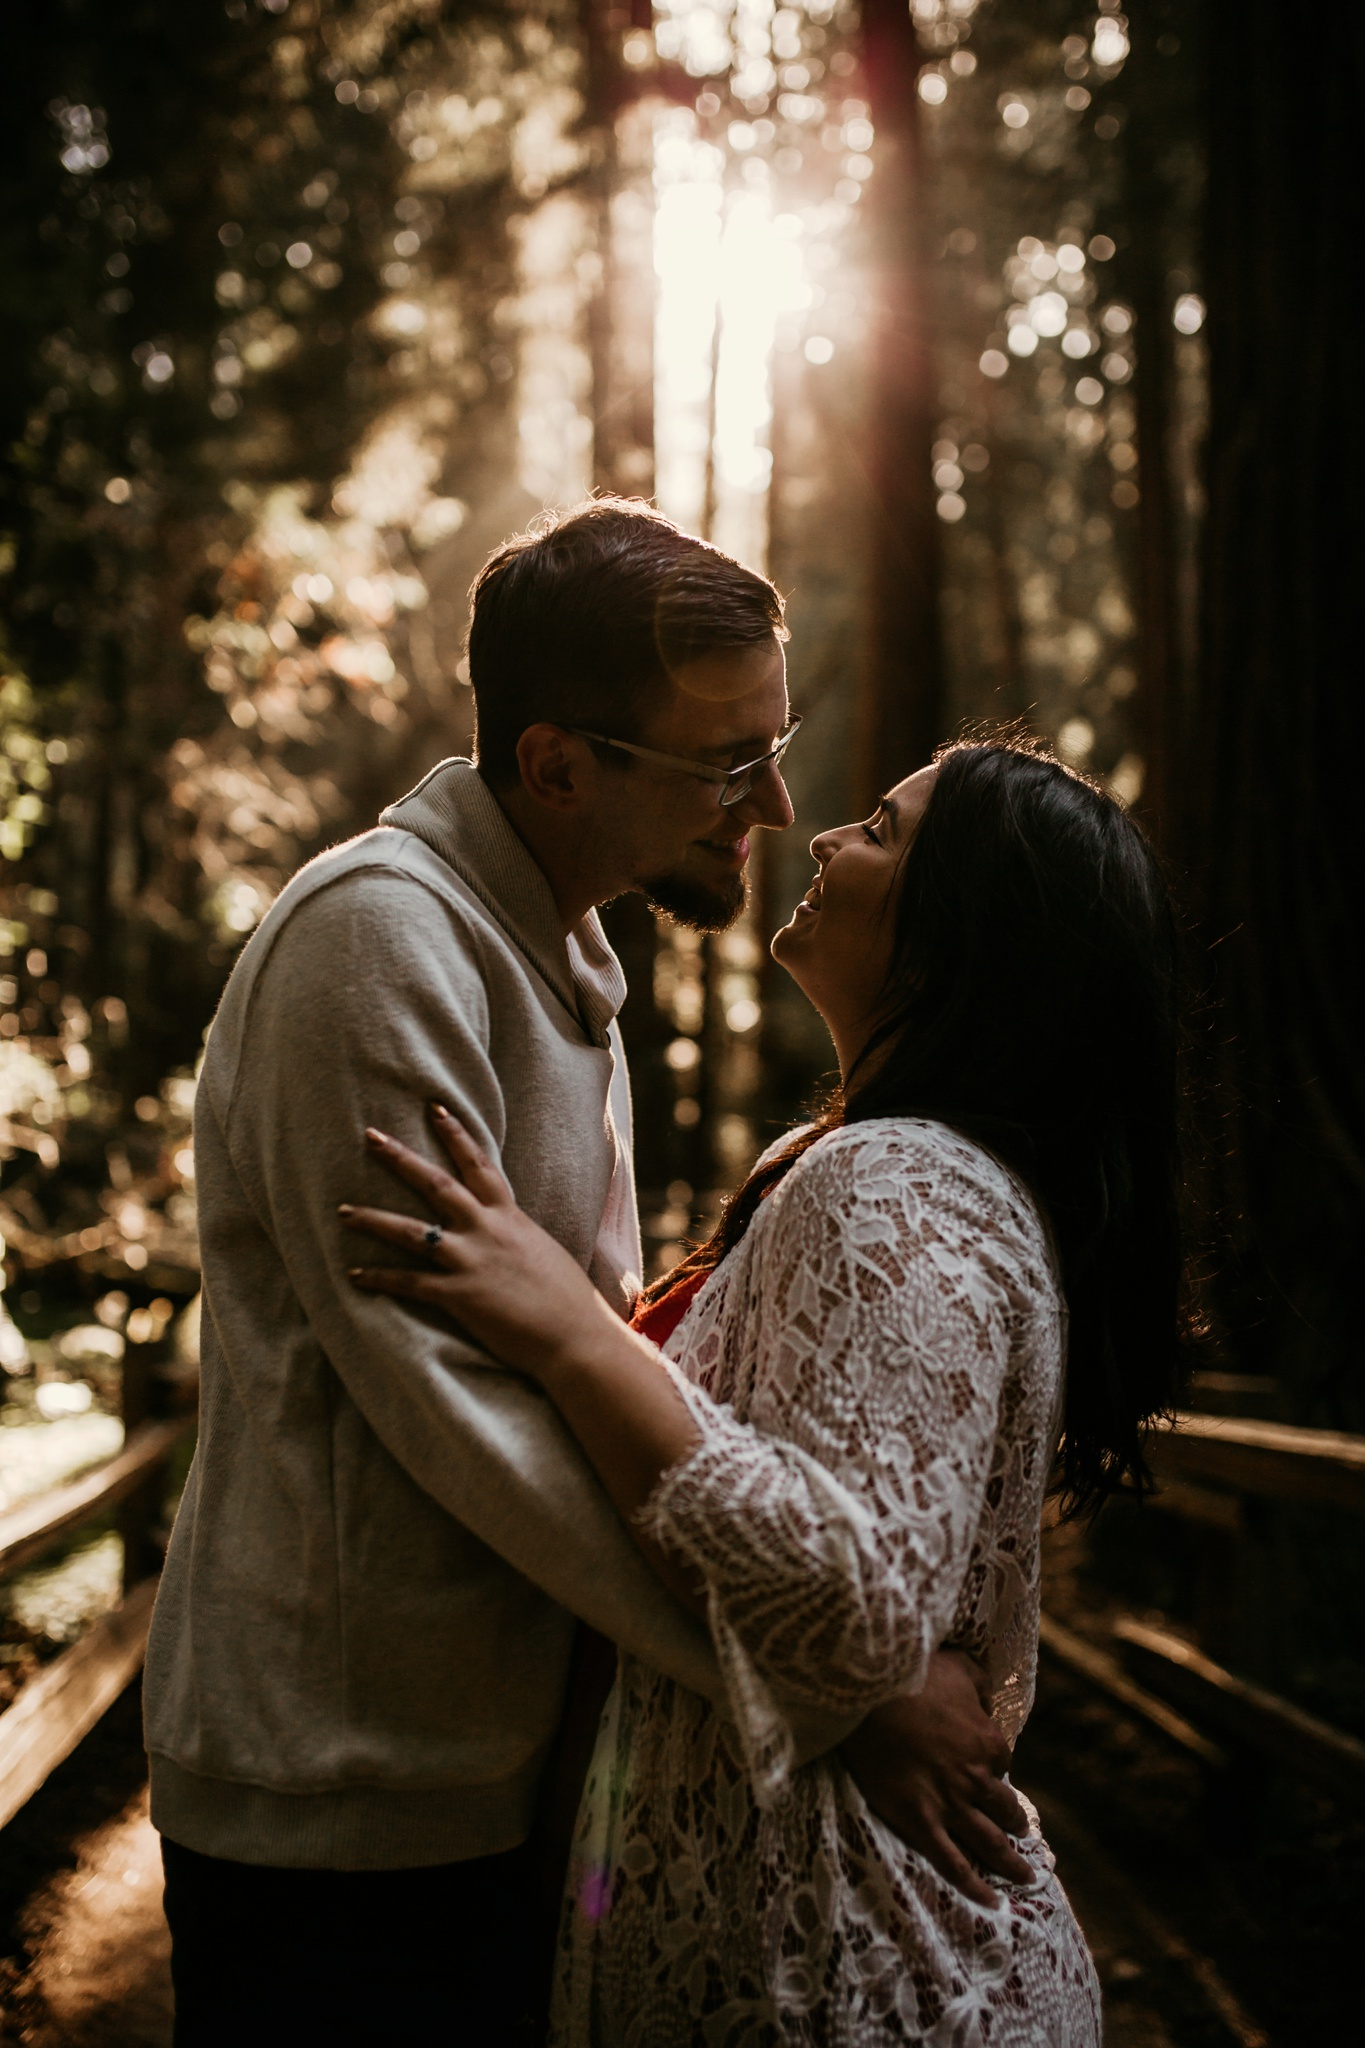 180503_engagement_bianca_muir_woods_mill_valley_danielle_alysse_photography_bay_area_photographer_blog_13_WEB.jpg